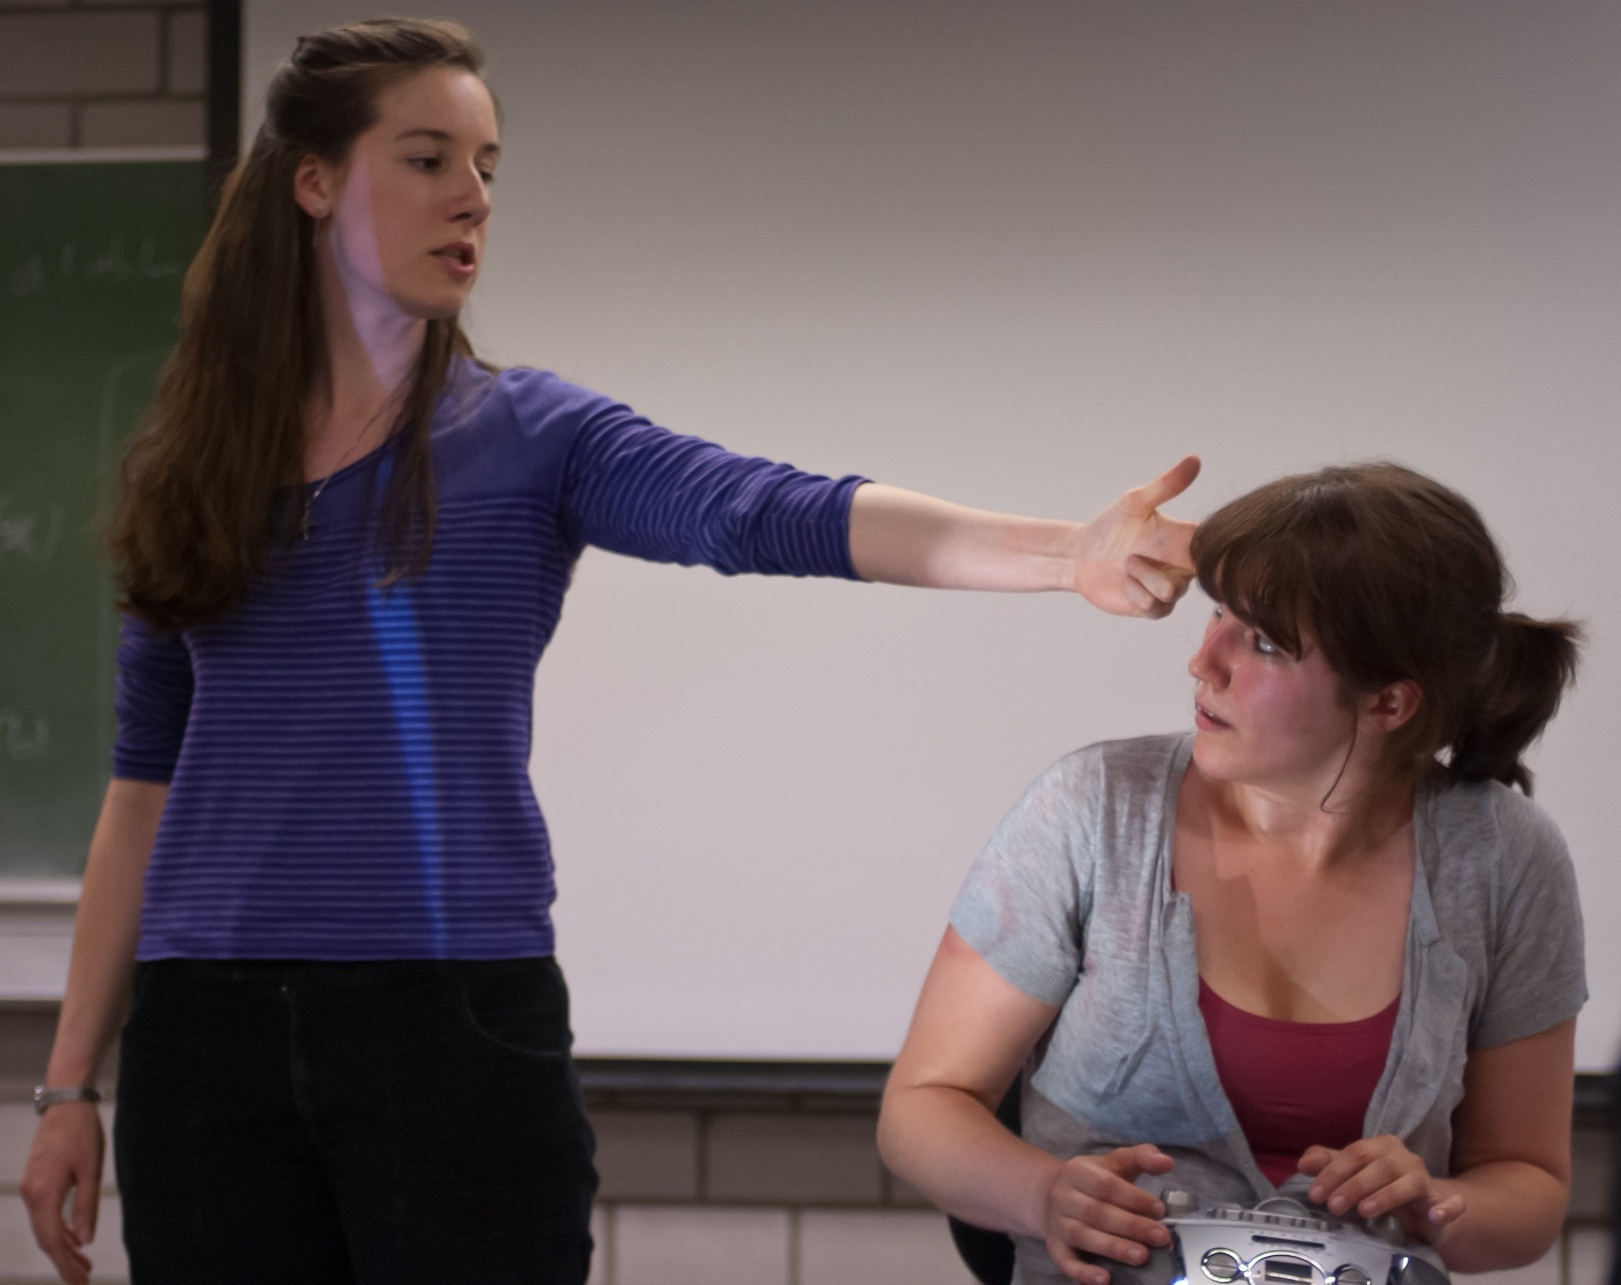 The Translator's Dilemma - A lecturer begins to unravel mid-lesson when she discovers that she must deliver a case study about asbestos -- the deadly mineral that killed her own family.This audience-interactive show premiered at the Edinburgh Festival Fringe, then invited to the Theaterszene Europa Festival in Cologne, Germany.